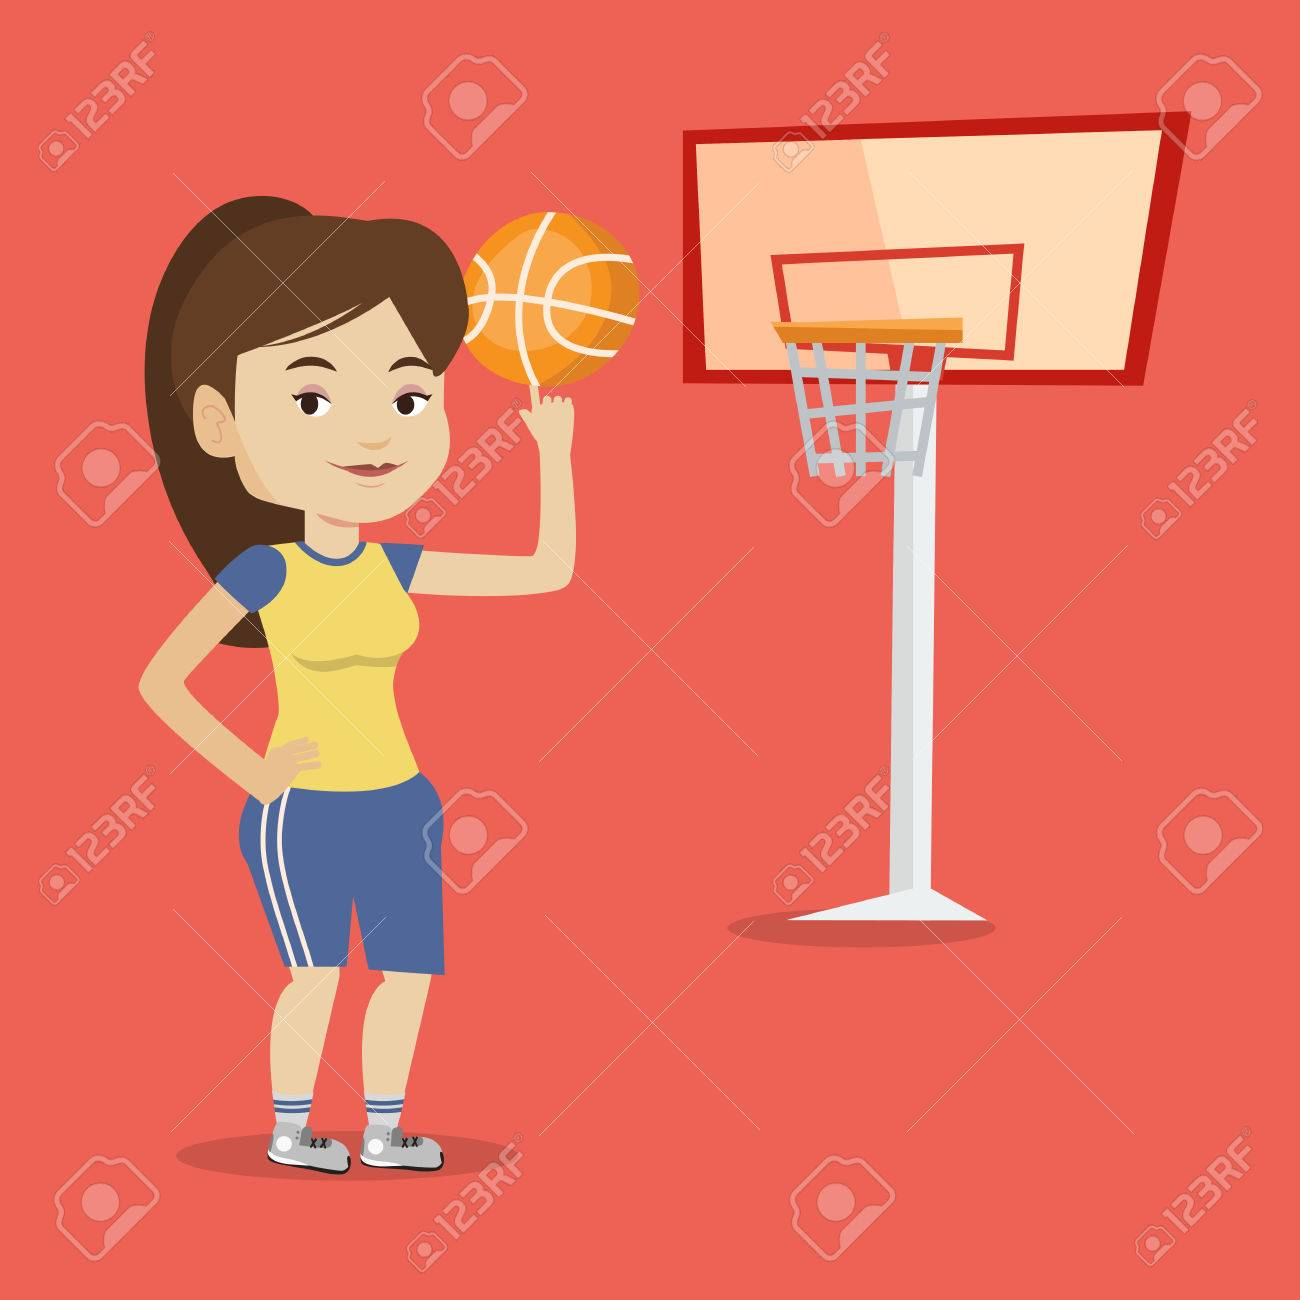 Basketball Player Standing Cartoon